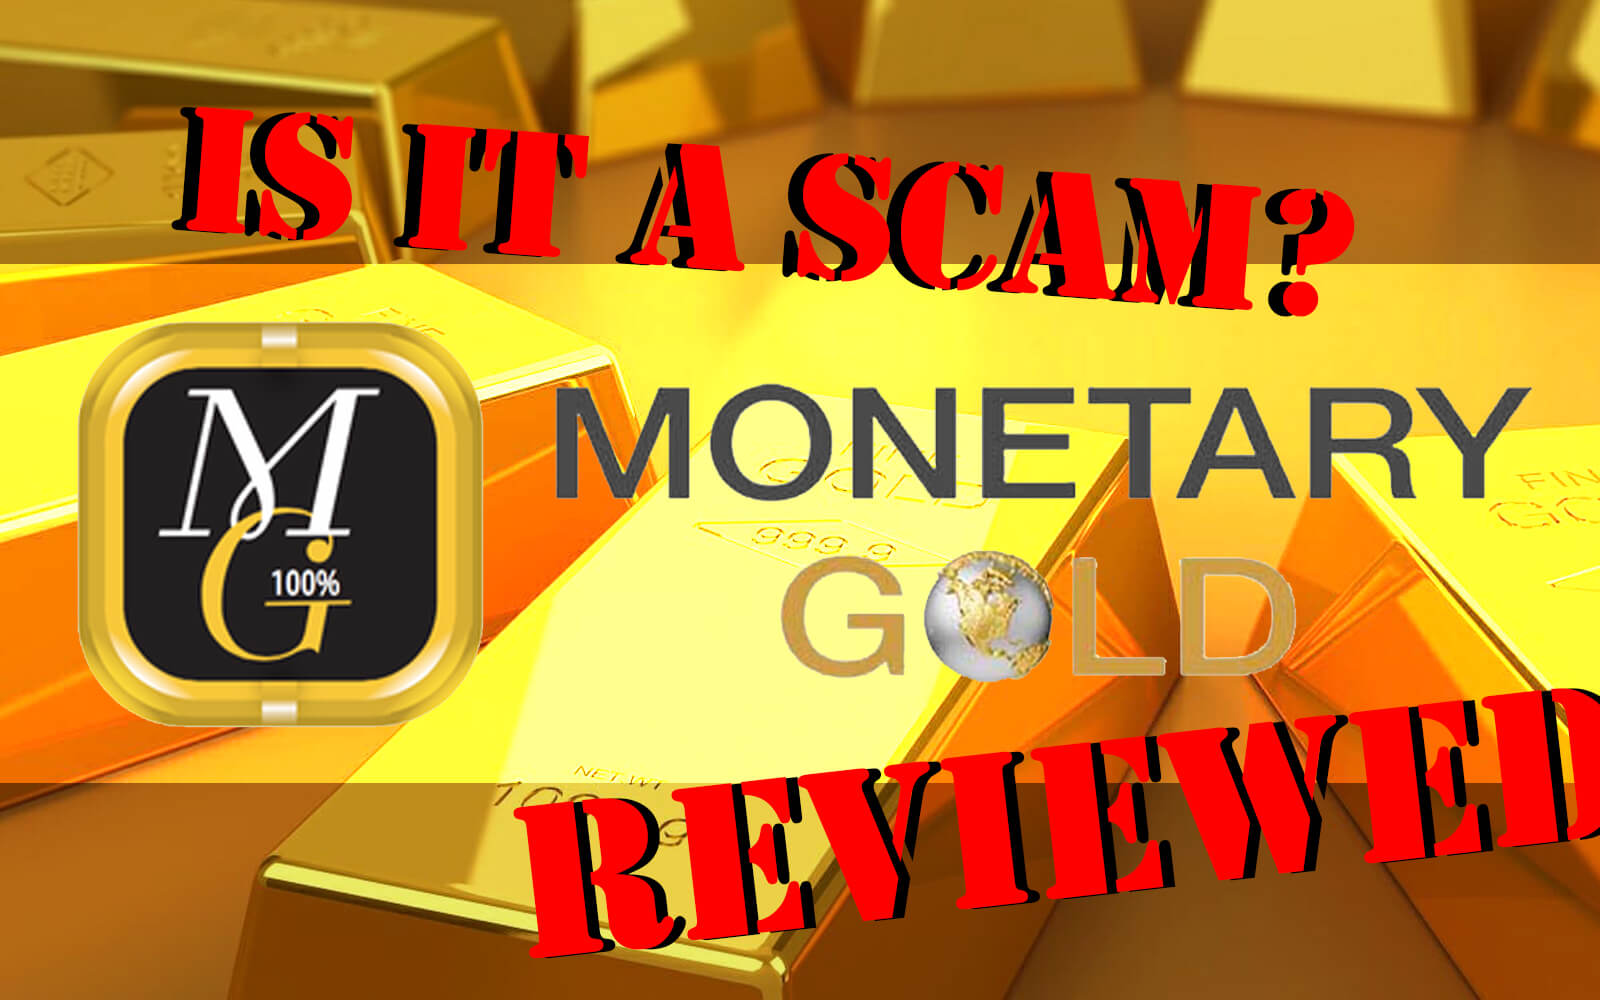 Monetary Gold Review